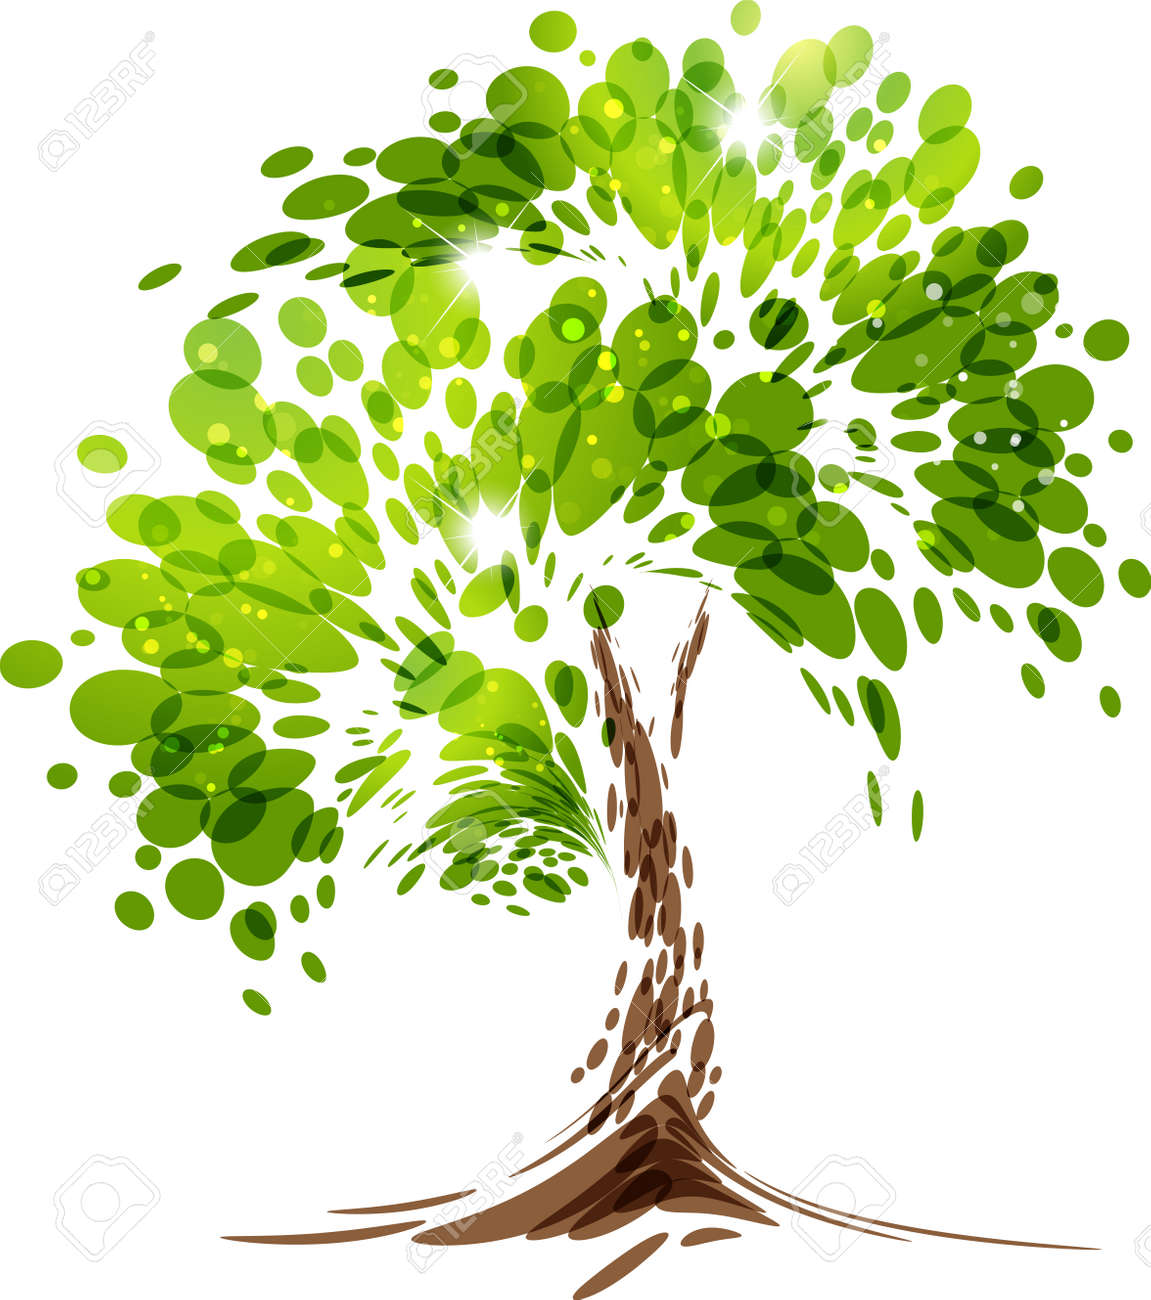 Green stylized vector tree on white background - 59220772